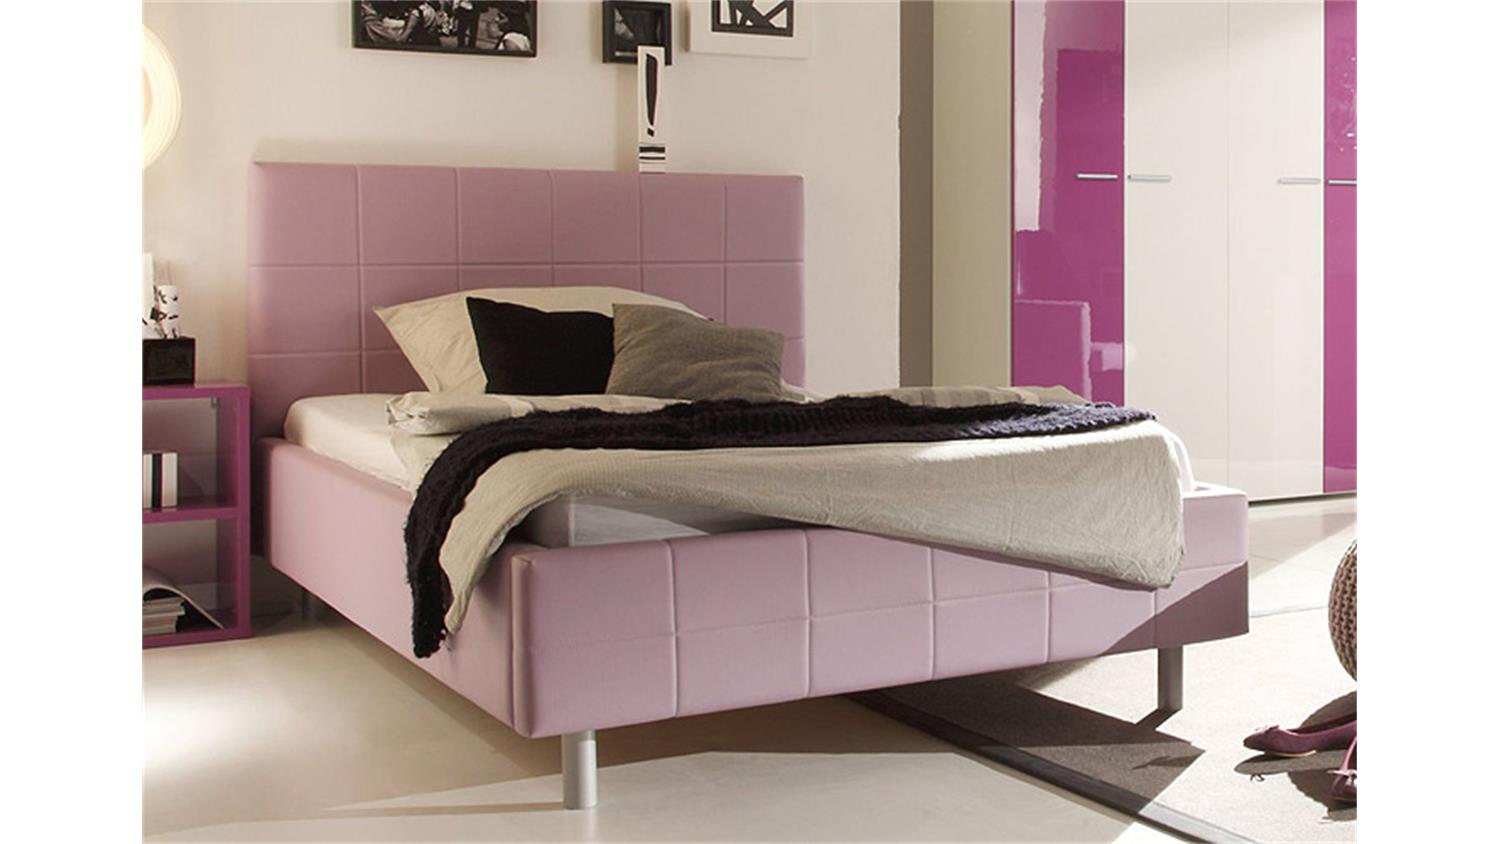 polsterbett smart bett schlafzimmerbett in lila 140x200 cm. Black Bedroom Furniture Sets. Home Design Ideas